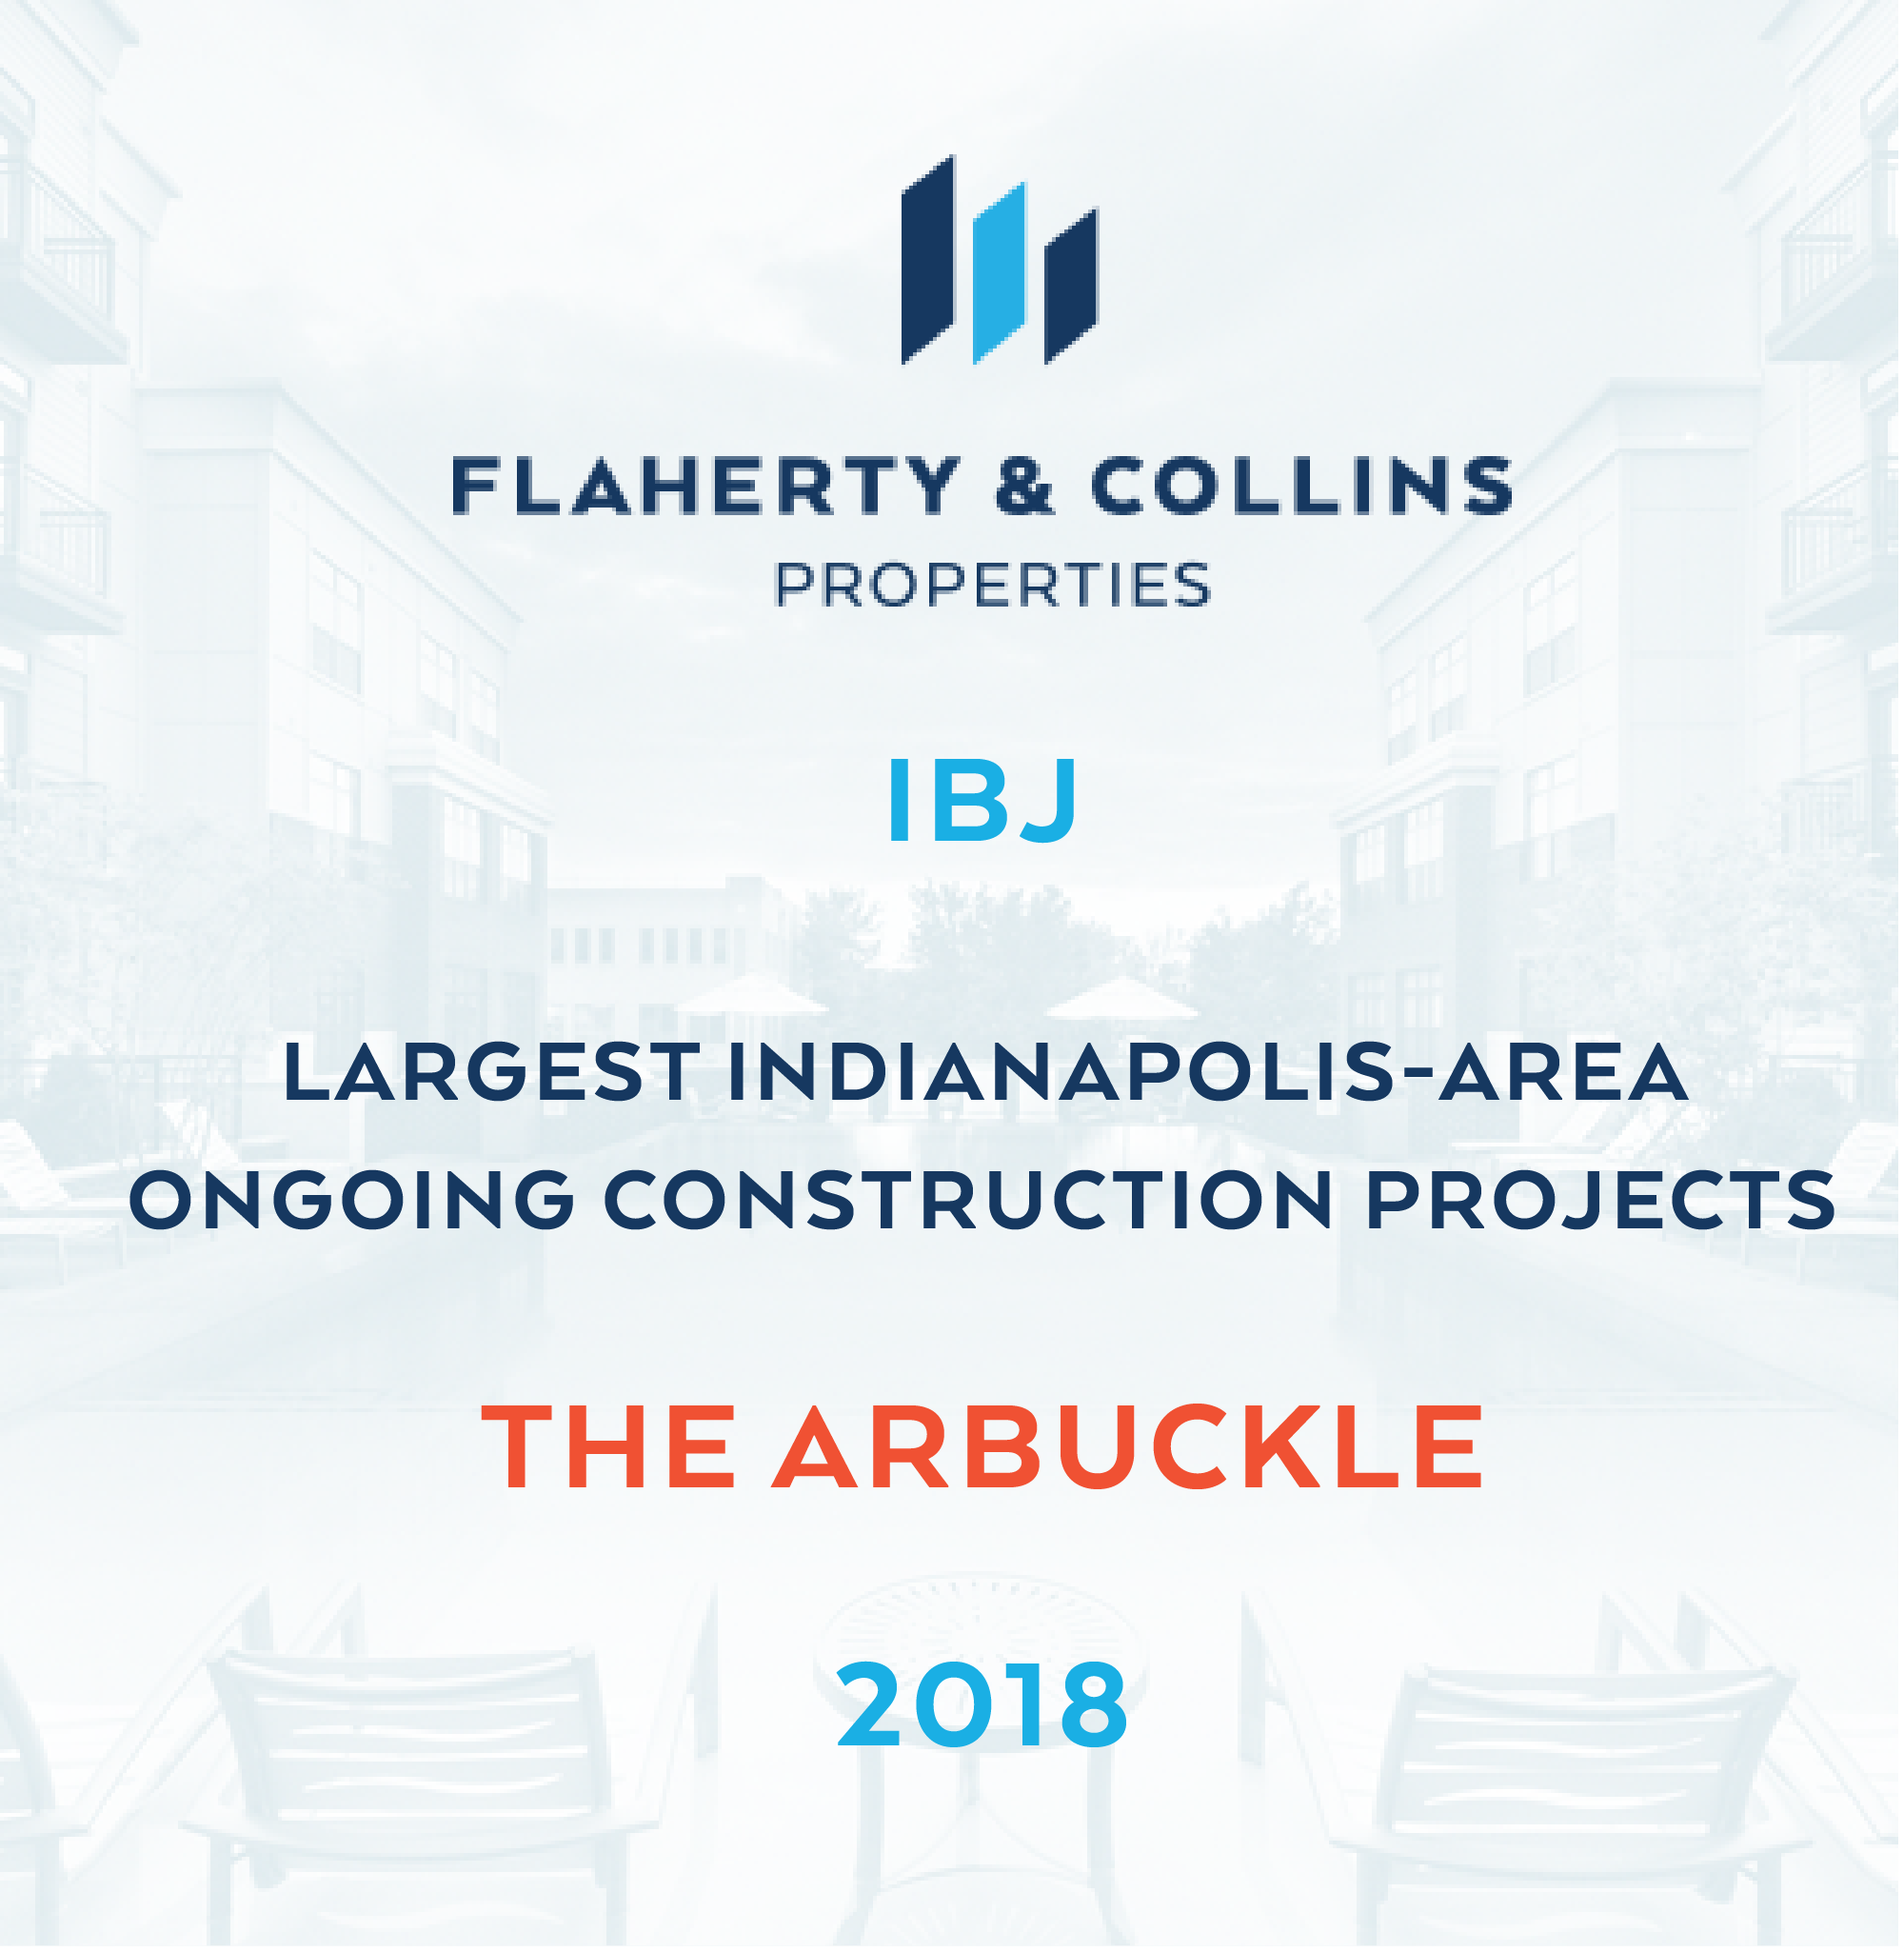 Largest Indianapolis-Area Ongoing Construction Projects